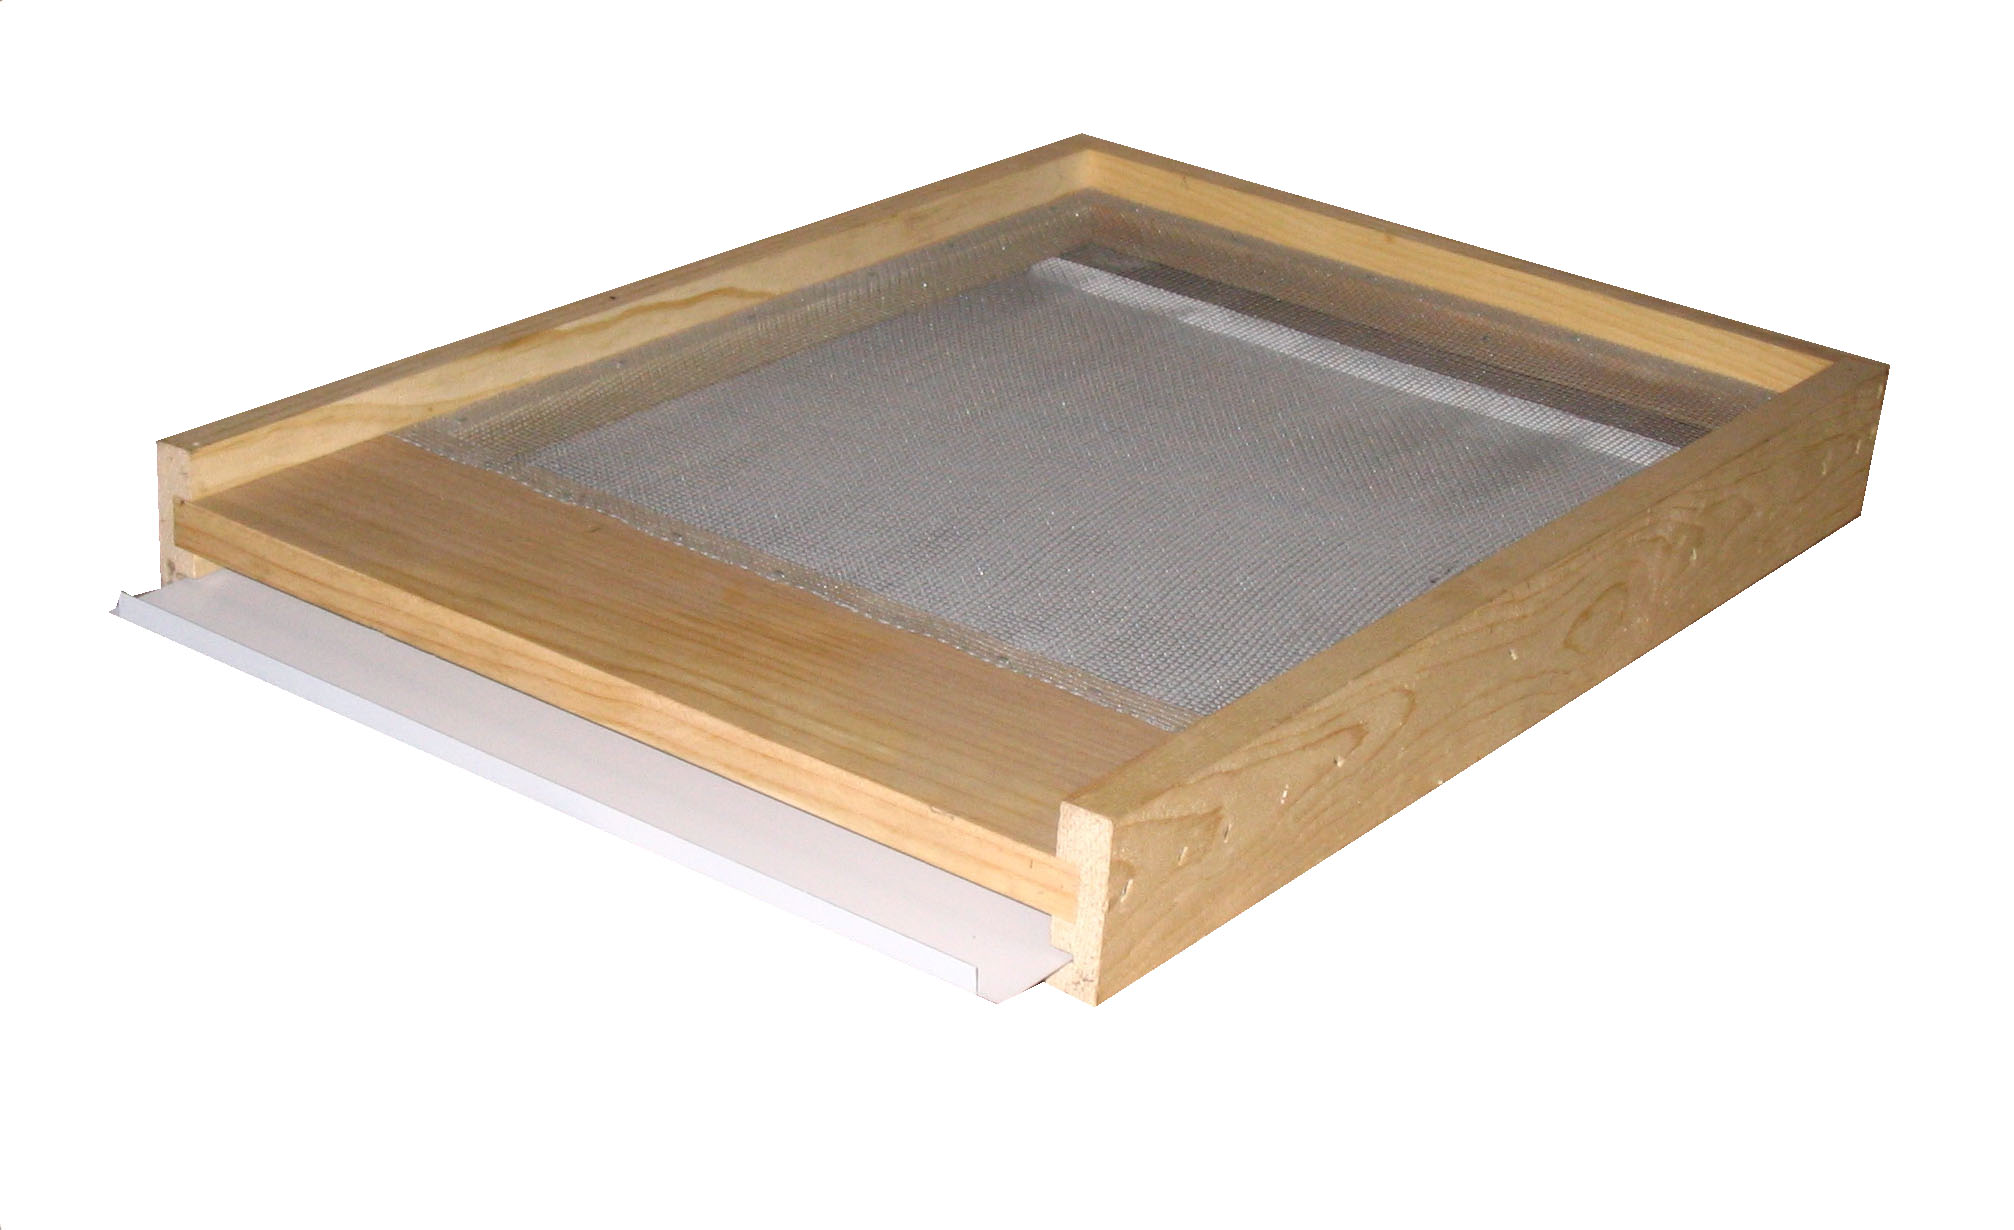 Screened Bottom Board -With Metal Tray